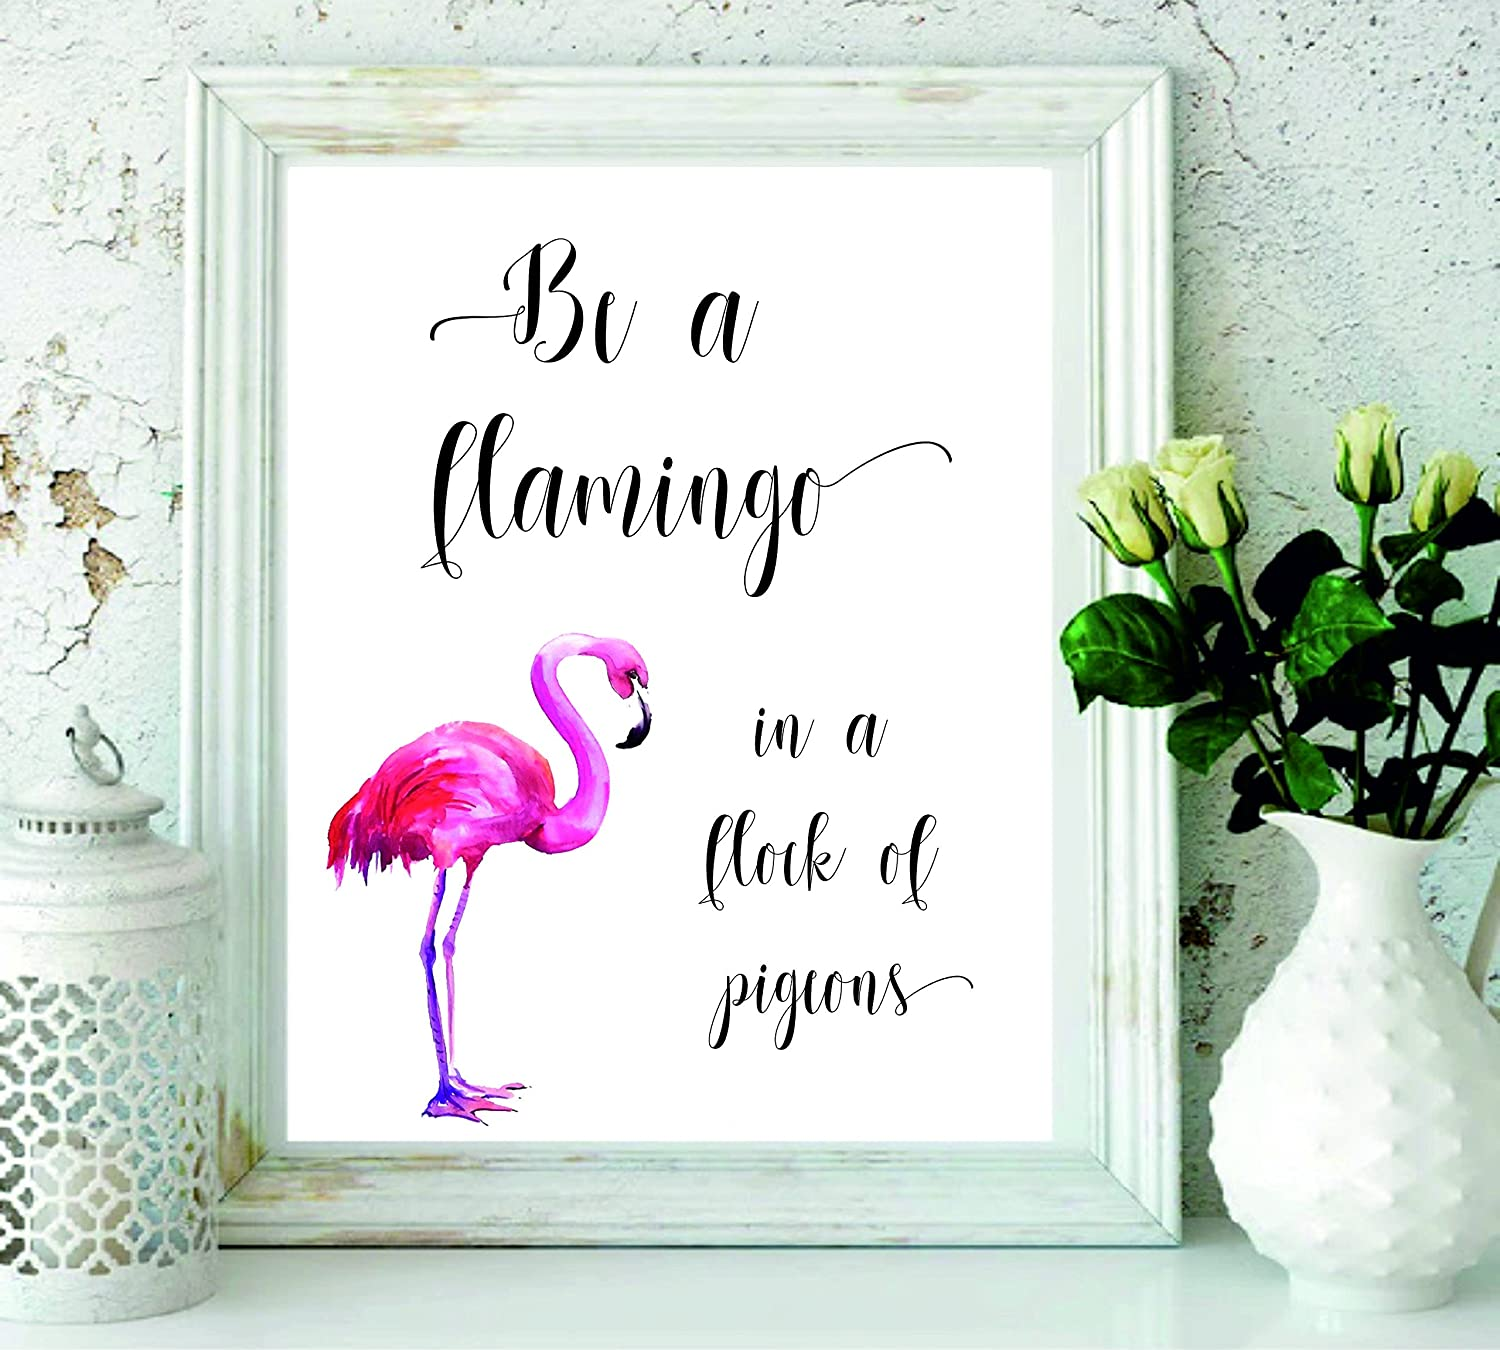 Signatives flamingo wall print wall art wall décor kids room décor nursery décor bedroom décor girls room décor large wall art housewarming